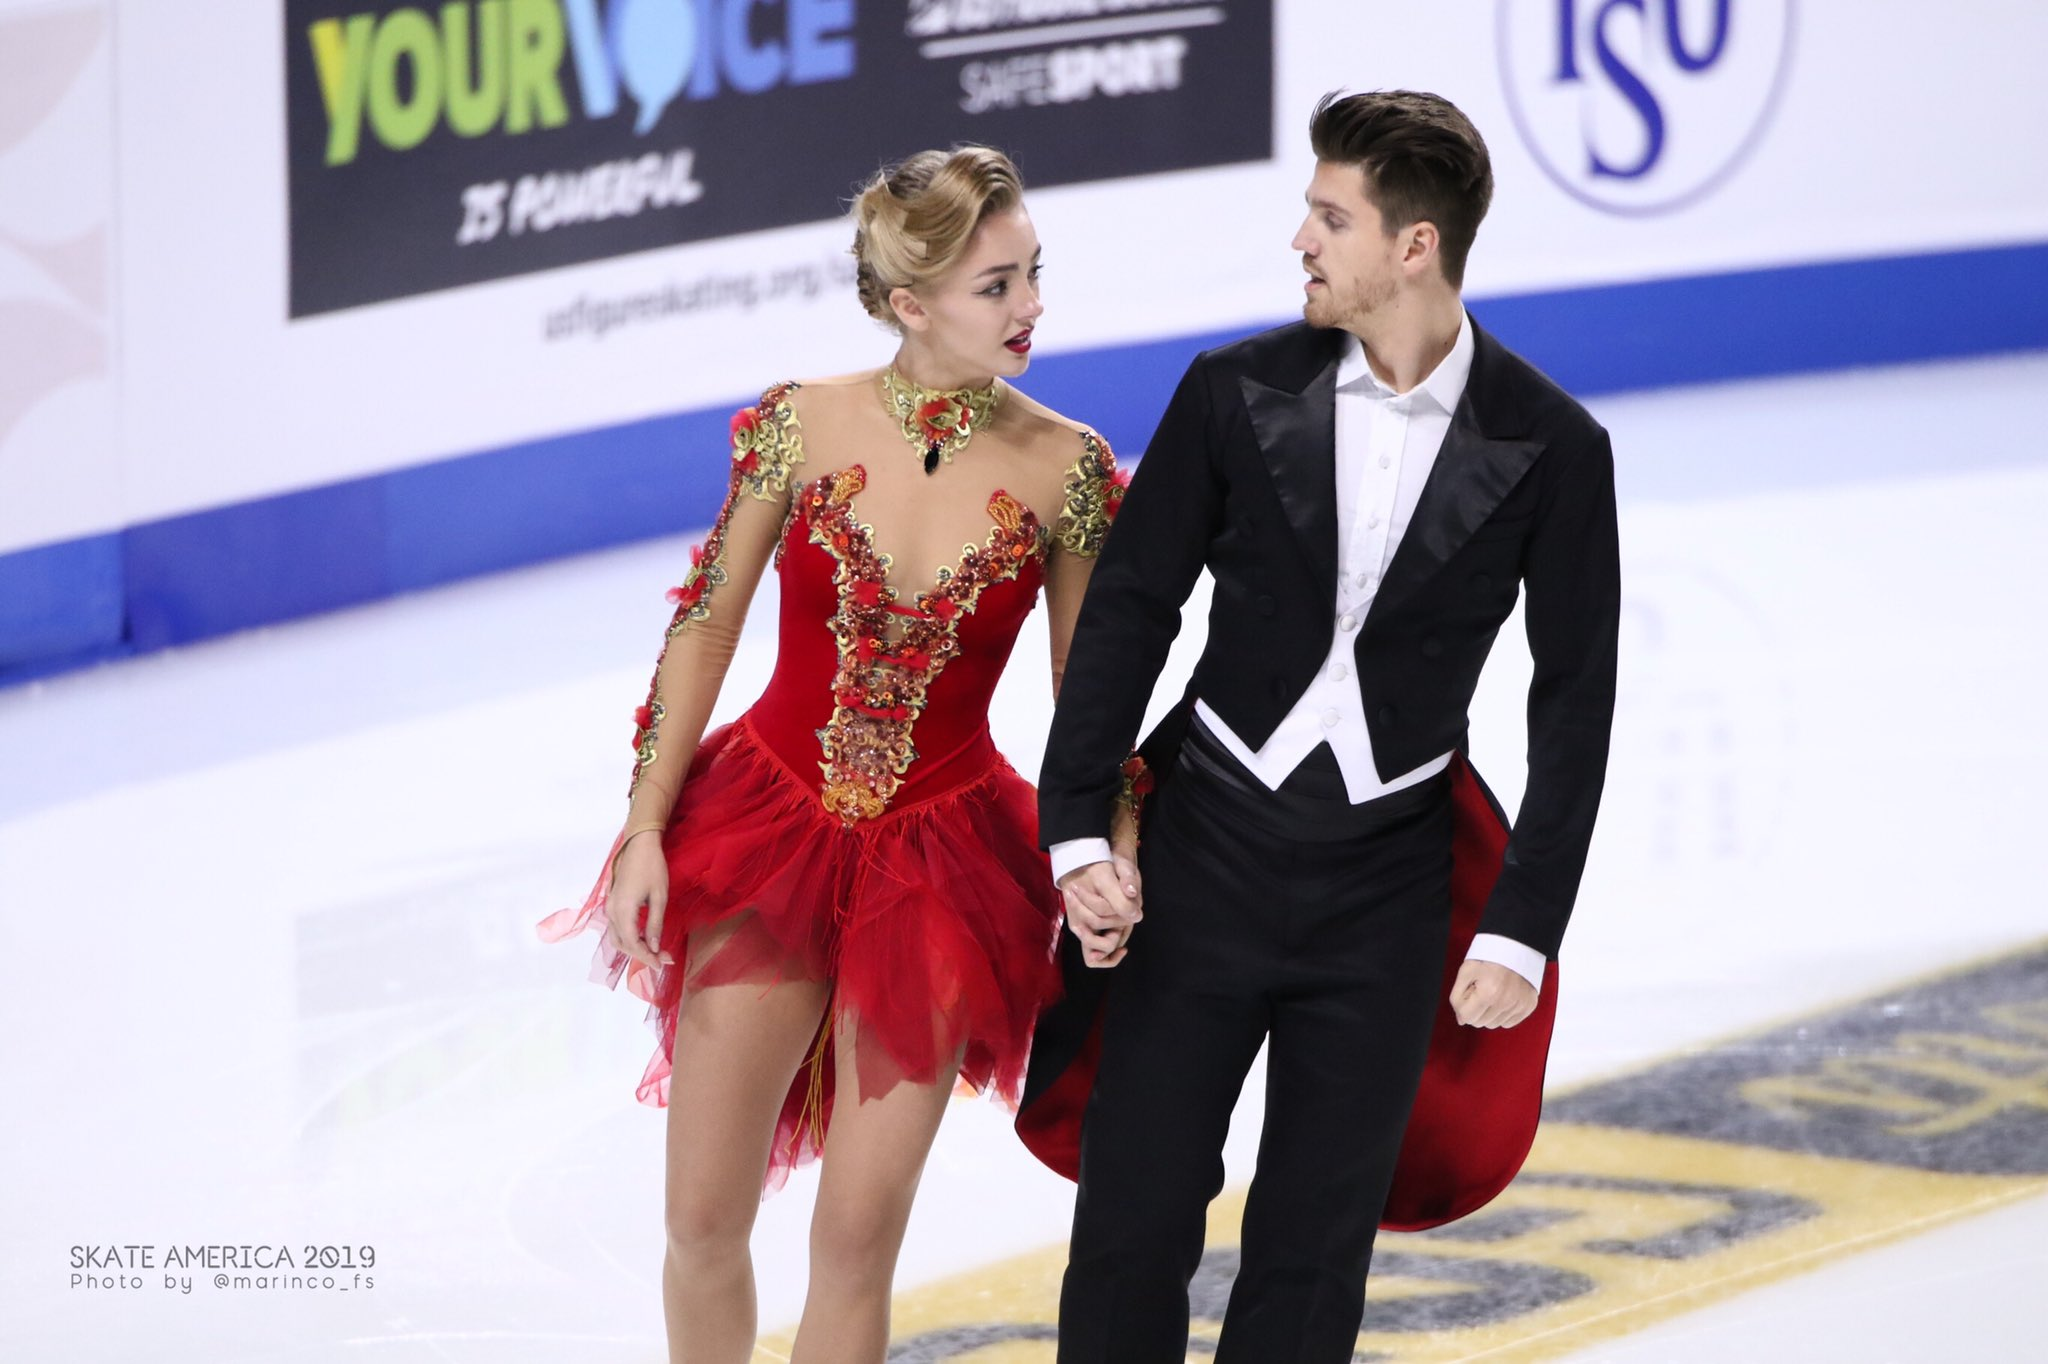 GP - 1 этап. Skate America Las Vegas, NV / USA October 18-20, 2019   - Страница 5 EHJQWbVUcAIqvZe?format=jpg&name=4096x4096